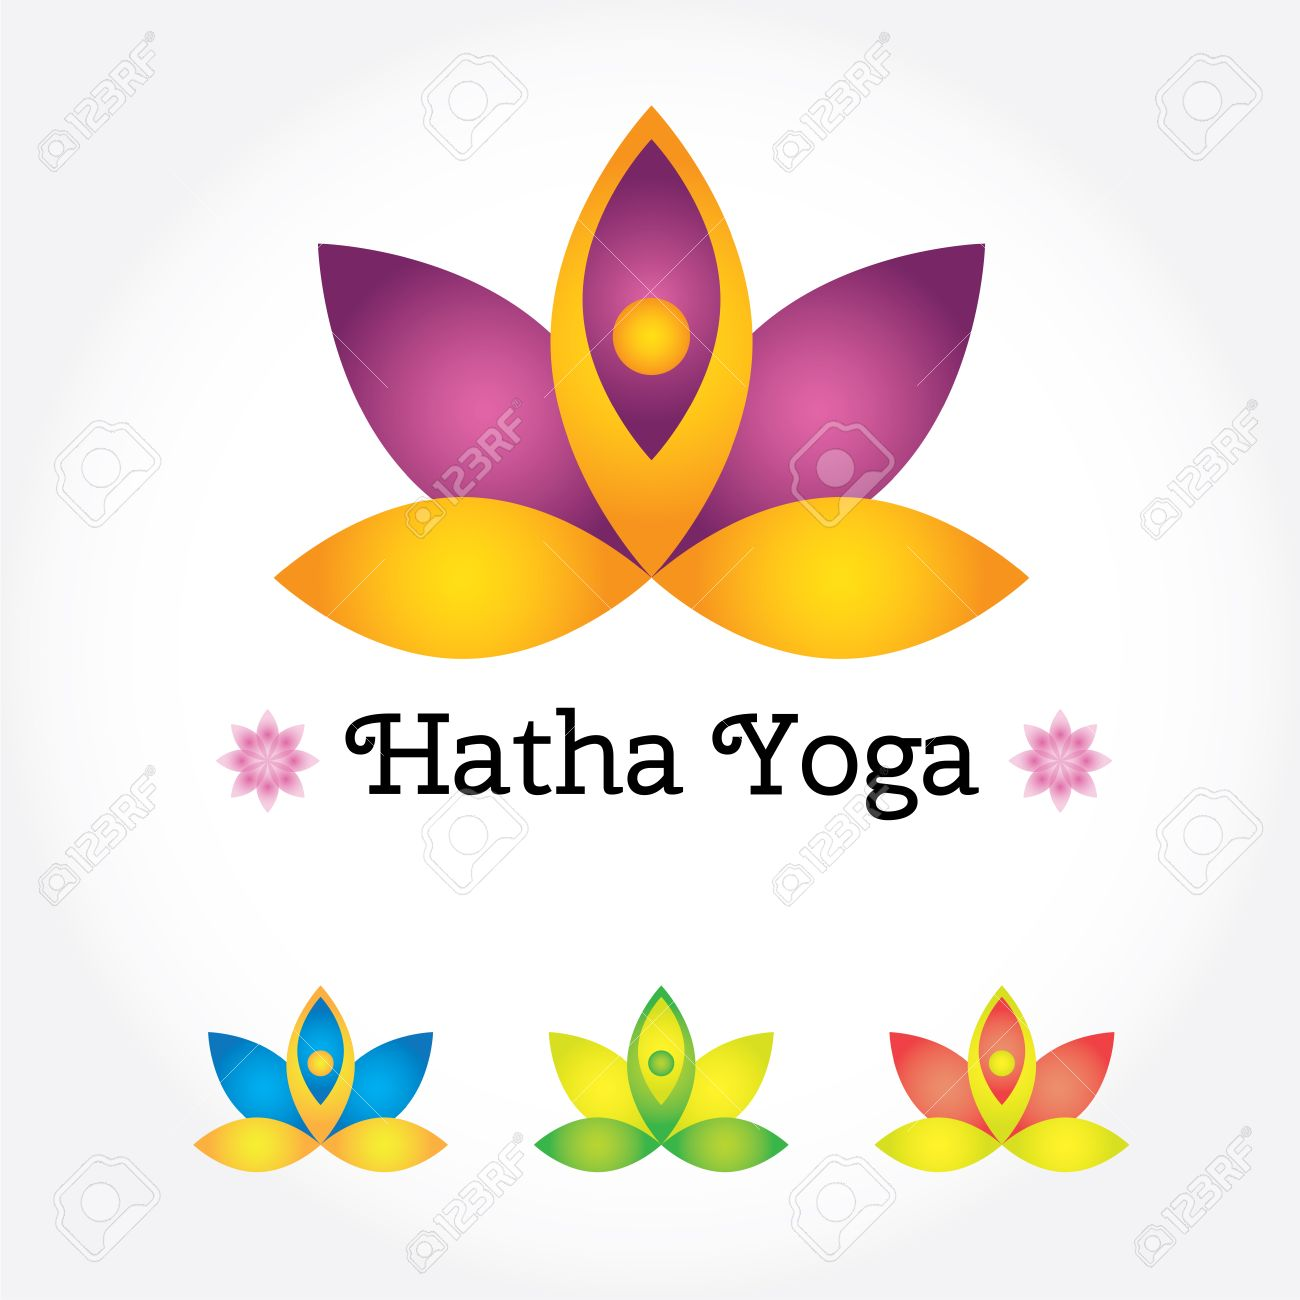 Hatha Yoga Sign Lotus Flower In Different Colors With Human Silhouette Modern Vector Illustration